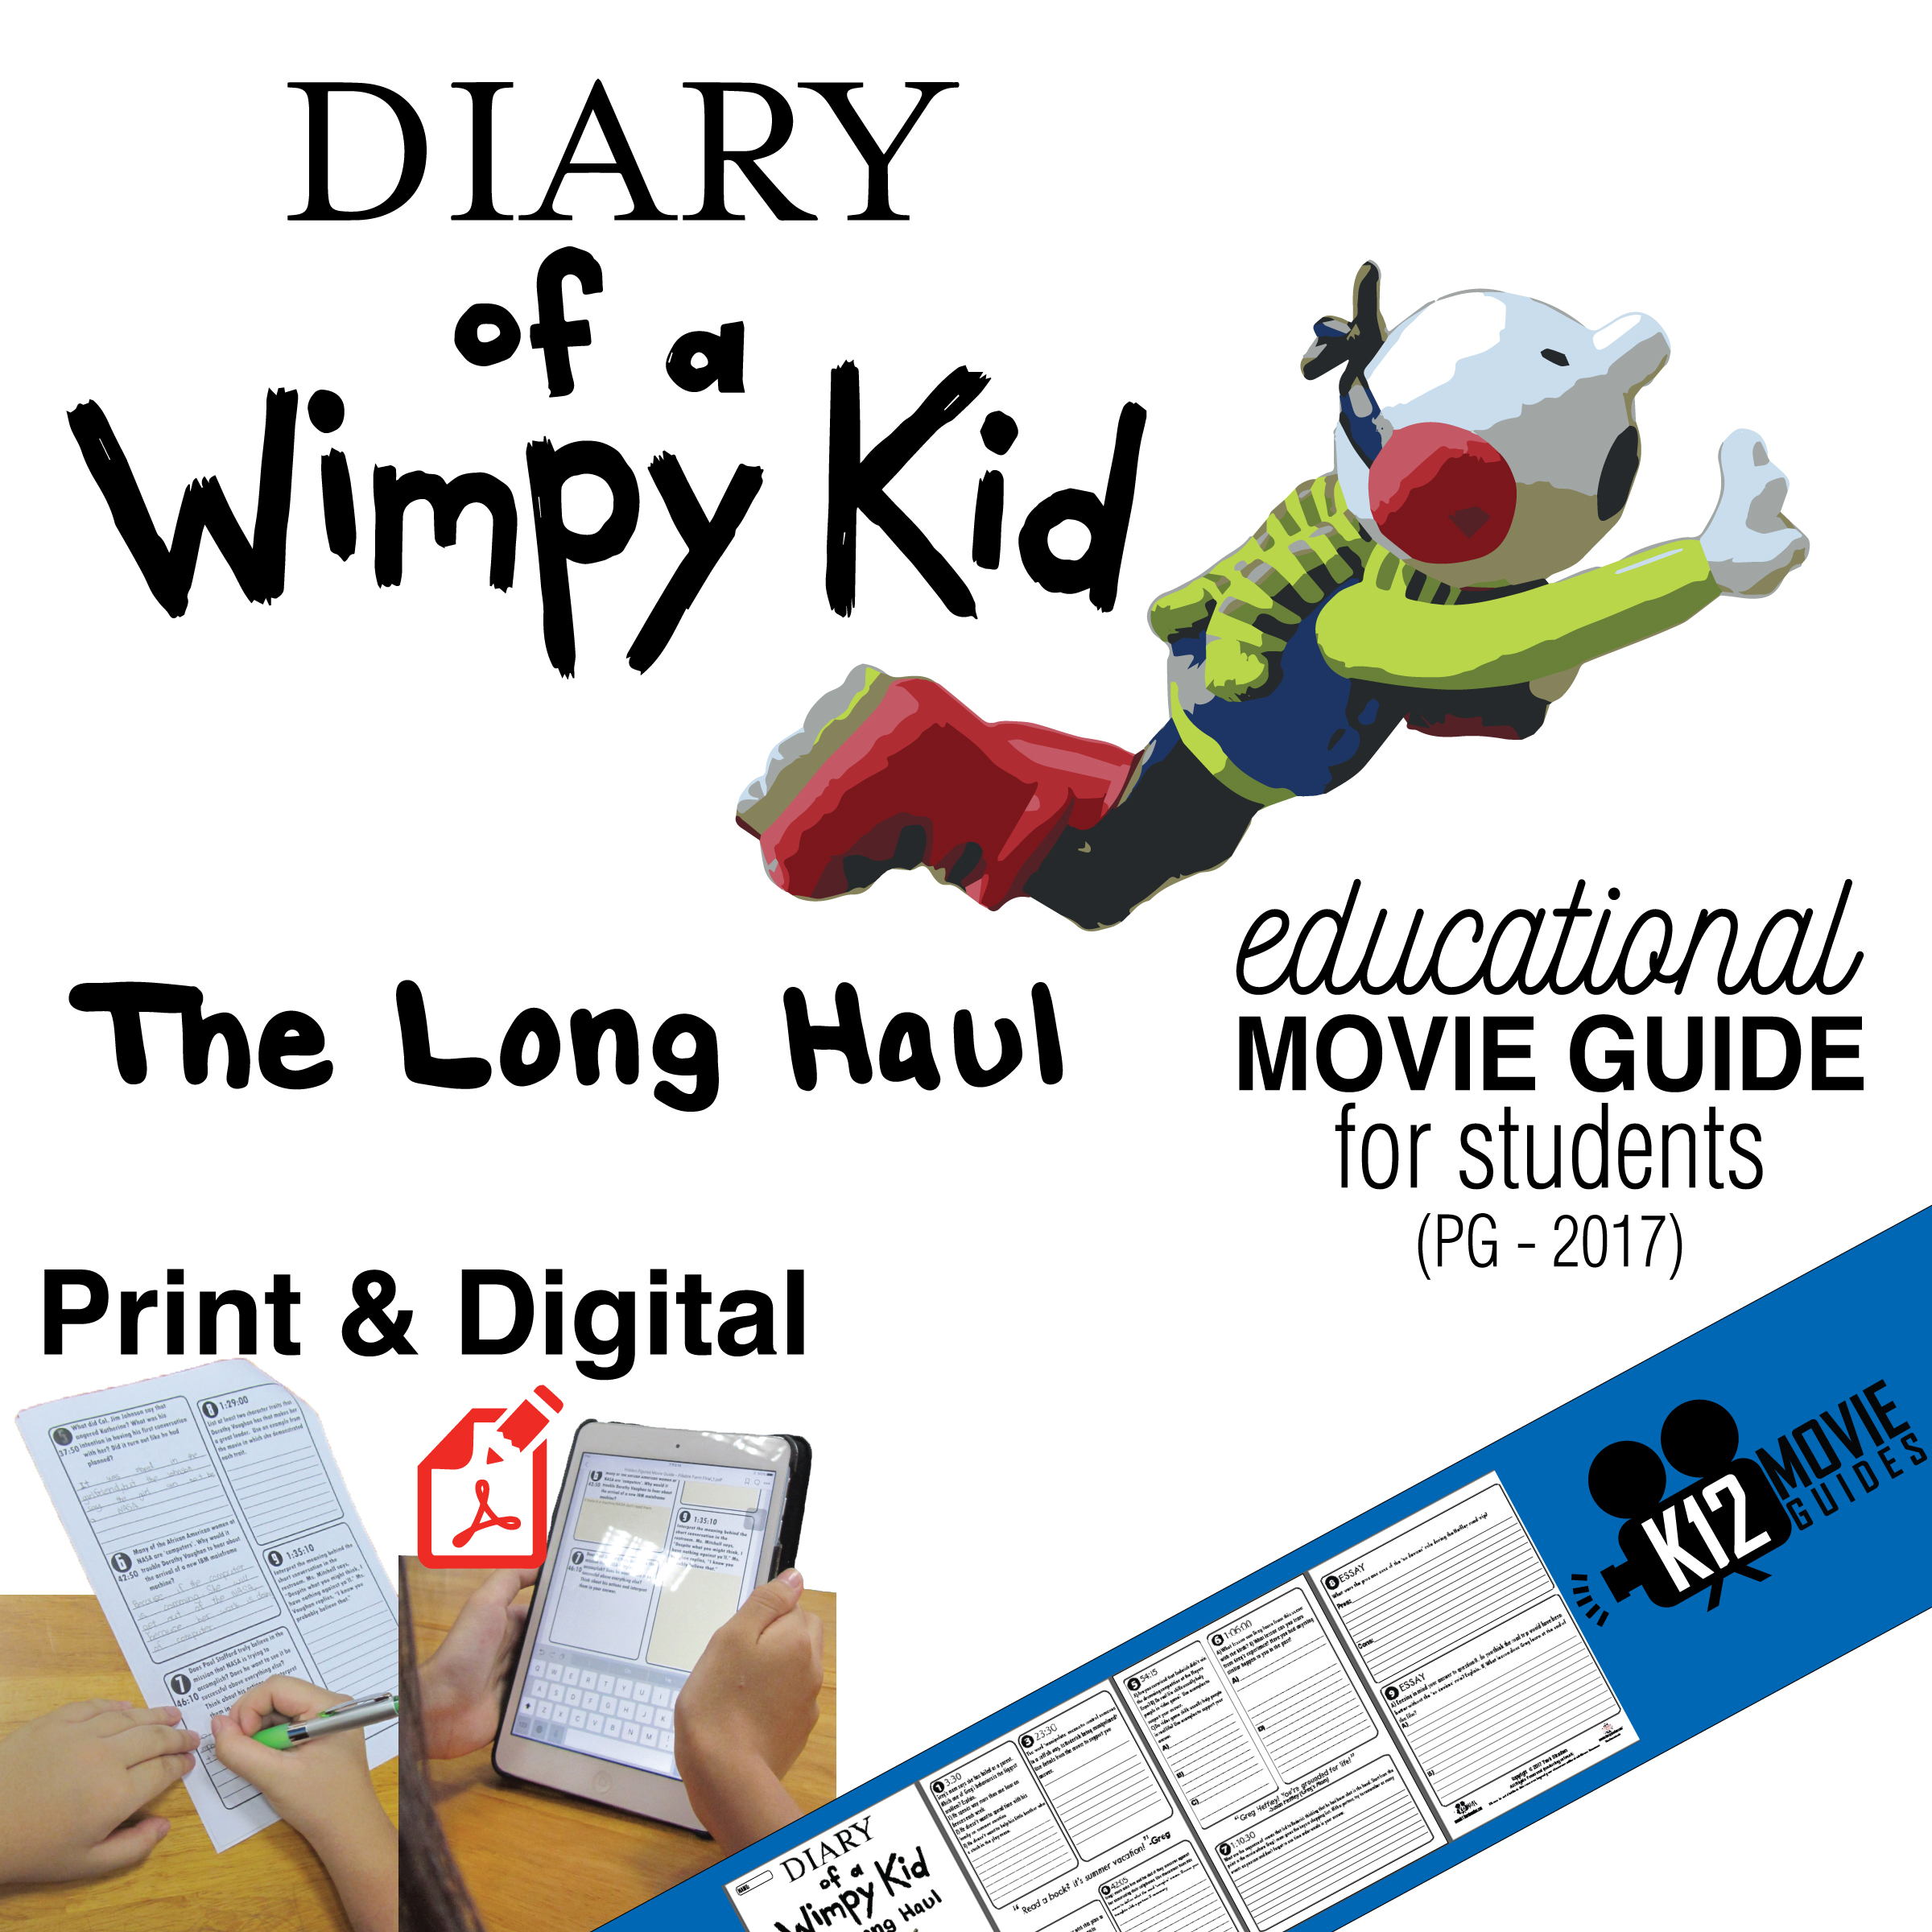 Diary of a Wimpy Kid - The Long Haul Movie Viewing Guide Cover